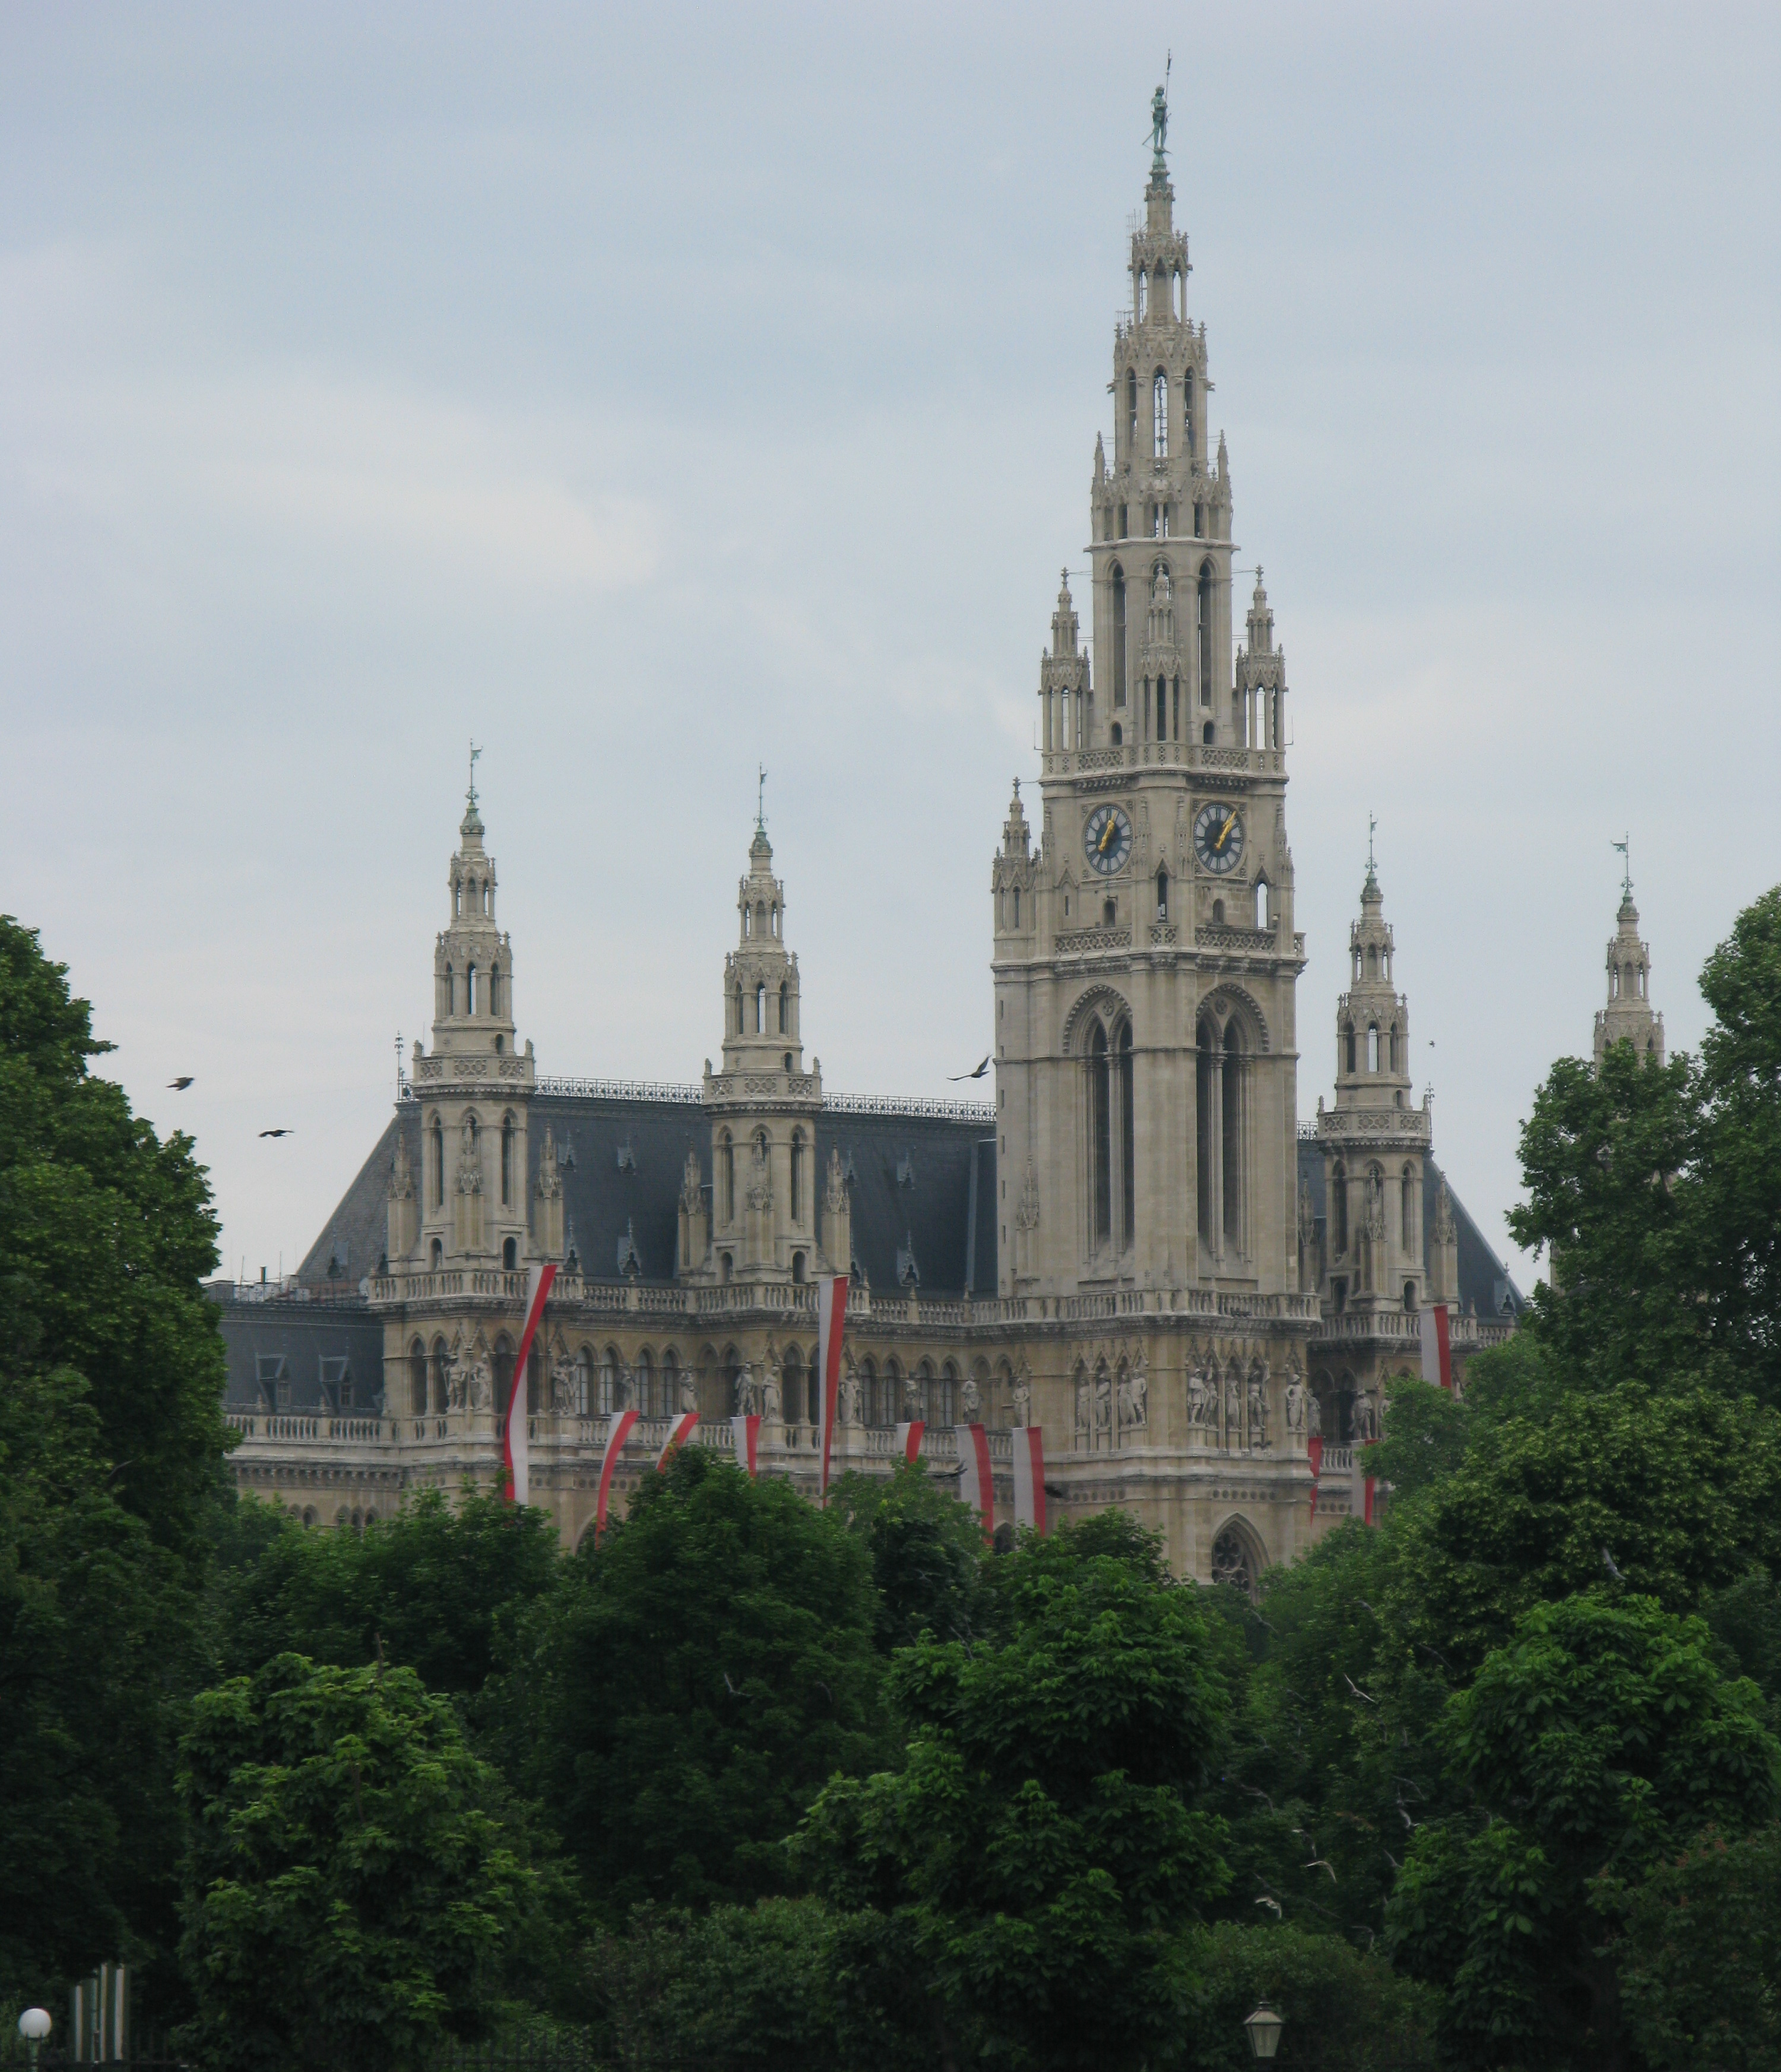 The Rathaus - The Town Hall